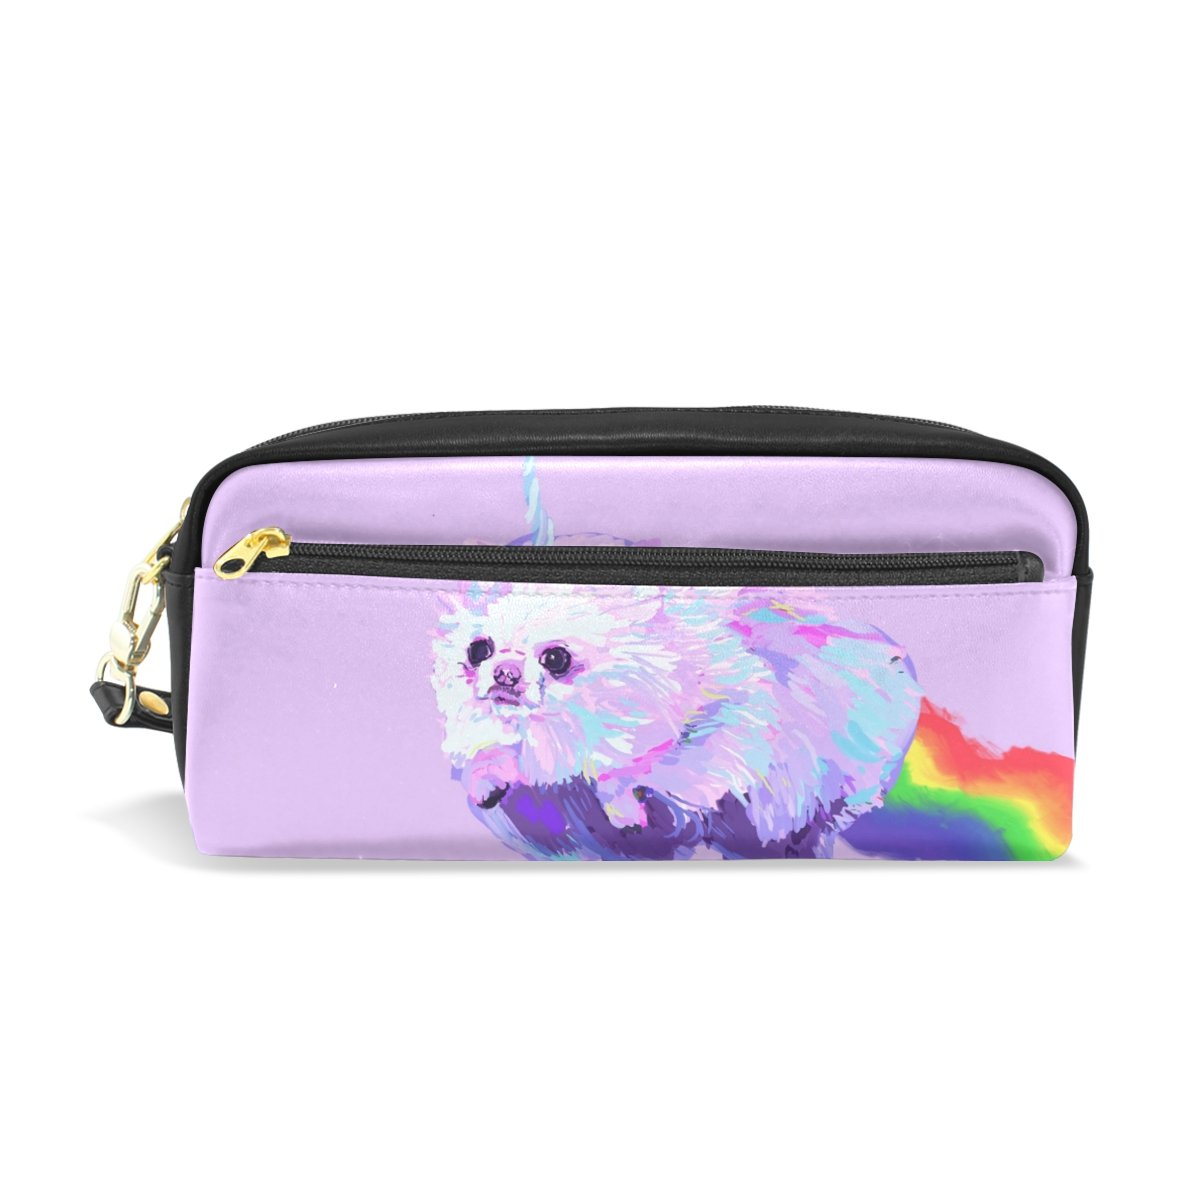 Sunlome Students PU Leather Pomeranian Dog Fantasy Unicorn Rainbow Stationary Pencil Case Pen Bag Pouch Makeup Cosmetic Bag